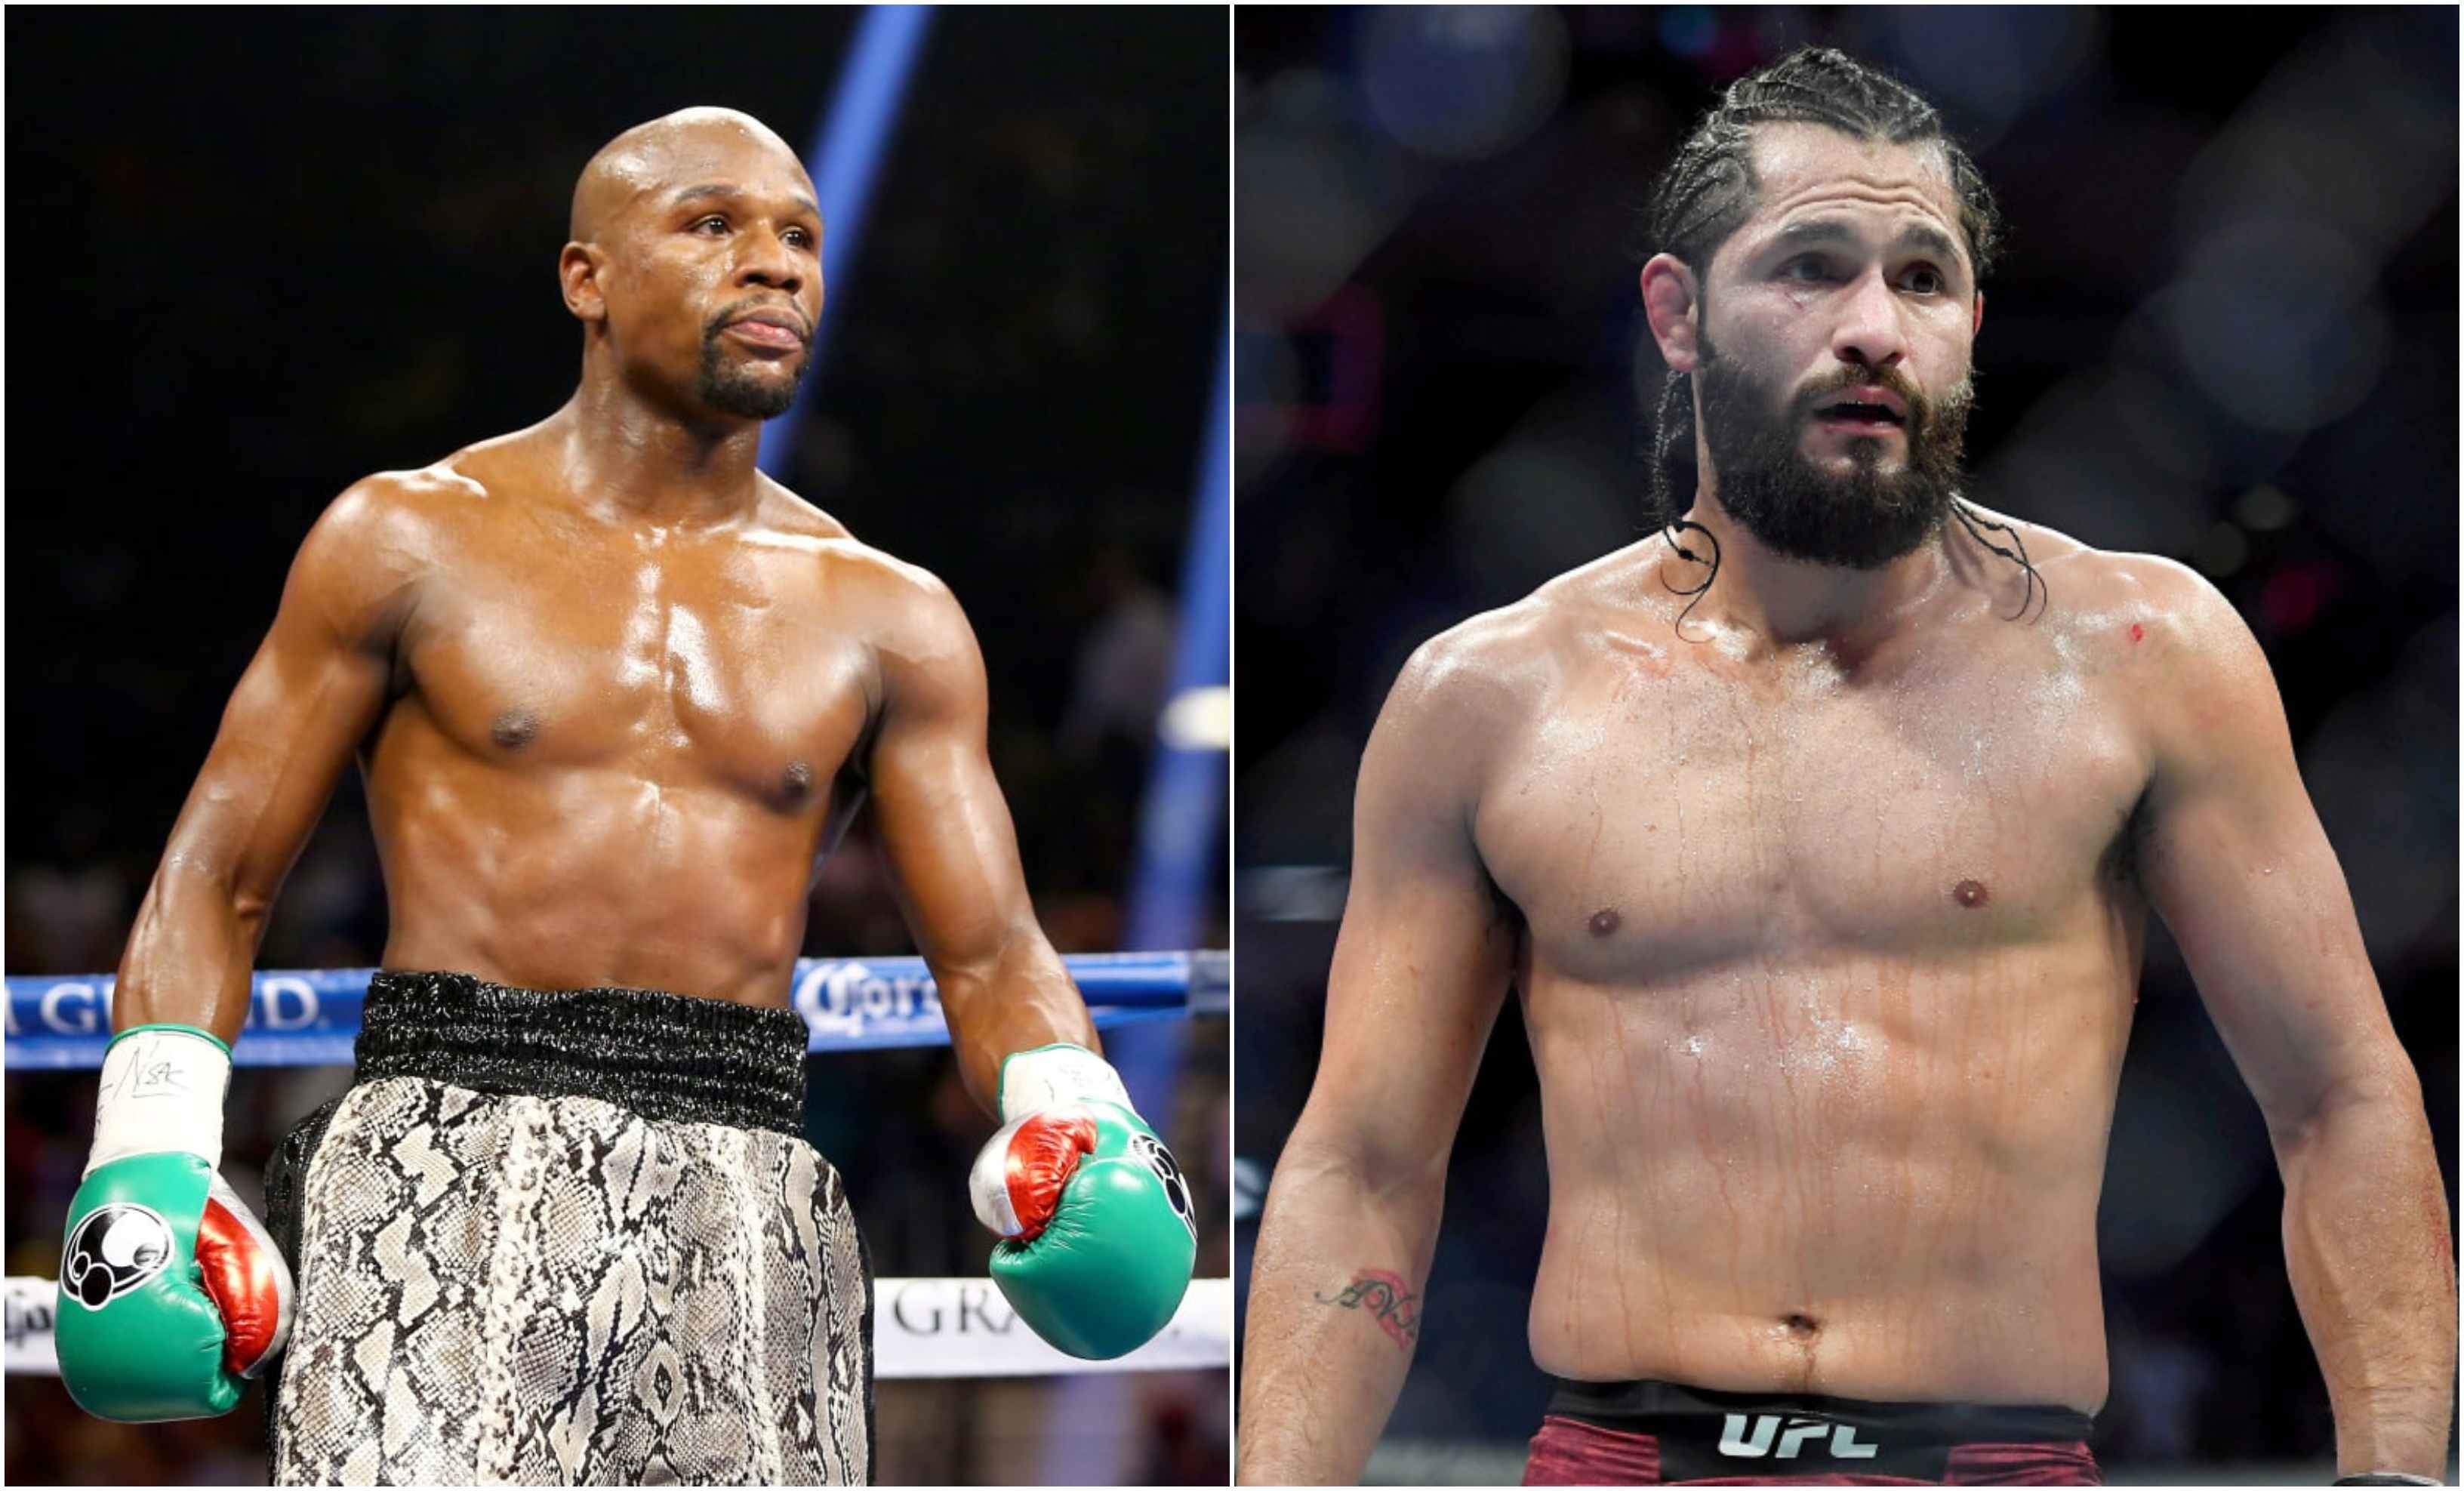 Jorge Masvidal gunning for a fight with Floyd Mayweather - Masvidal